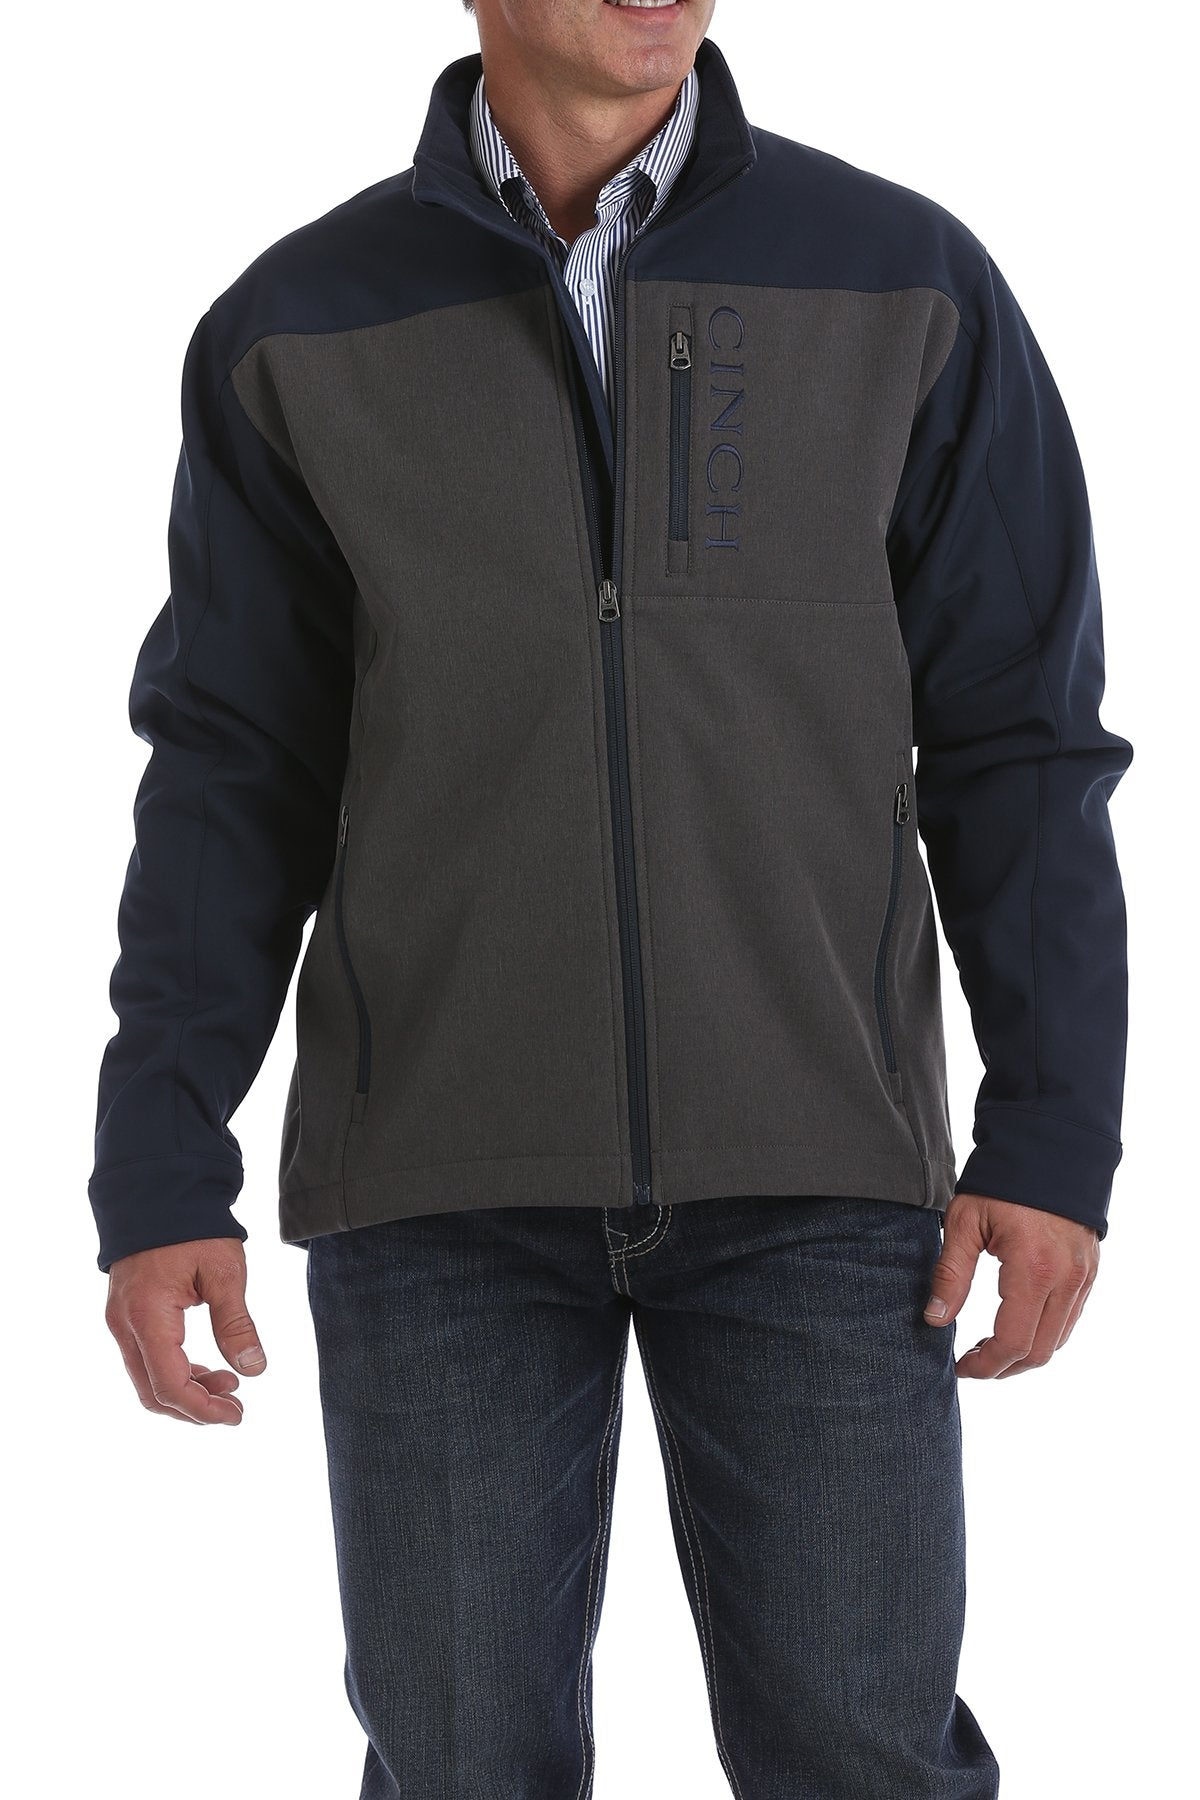 Cinch Color Blocked Navy and Charcoal Bonded Men's Jacket